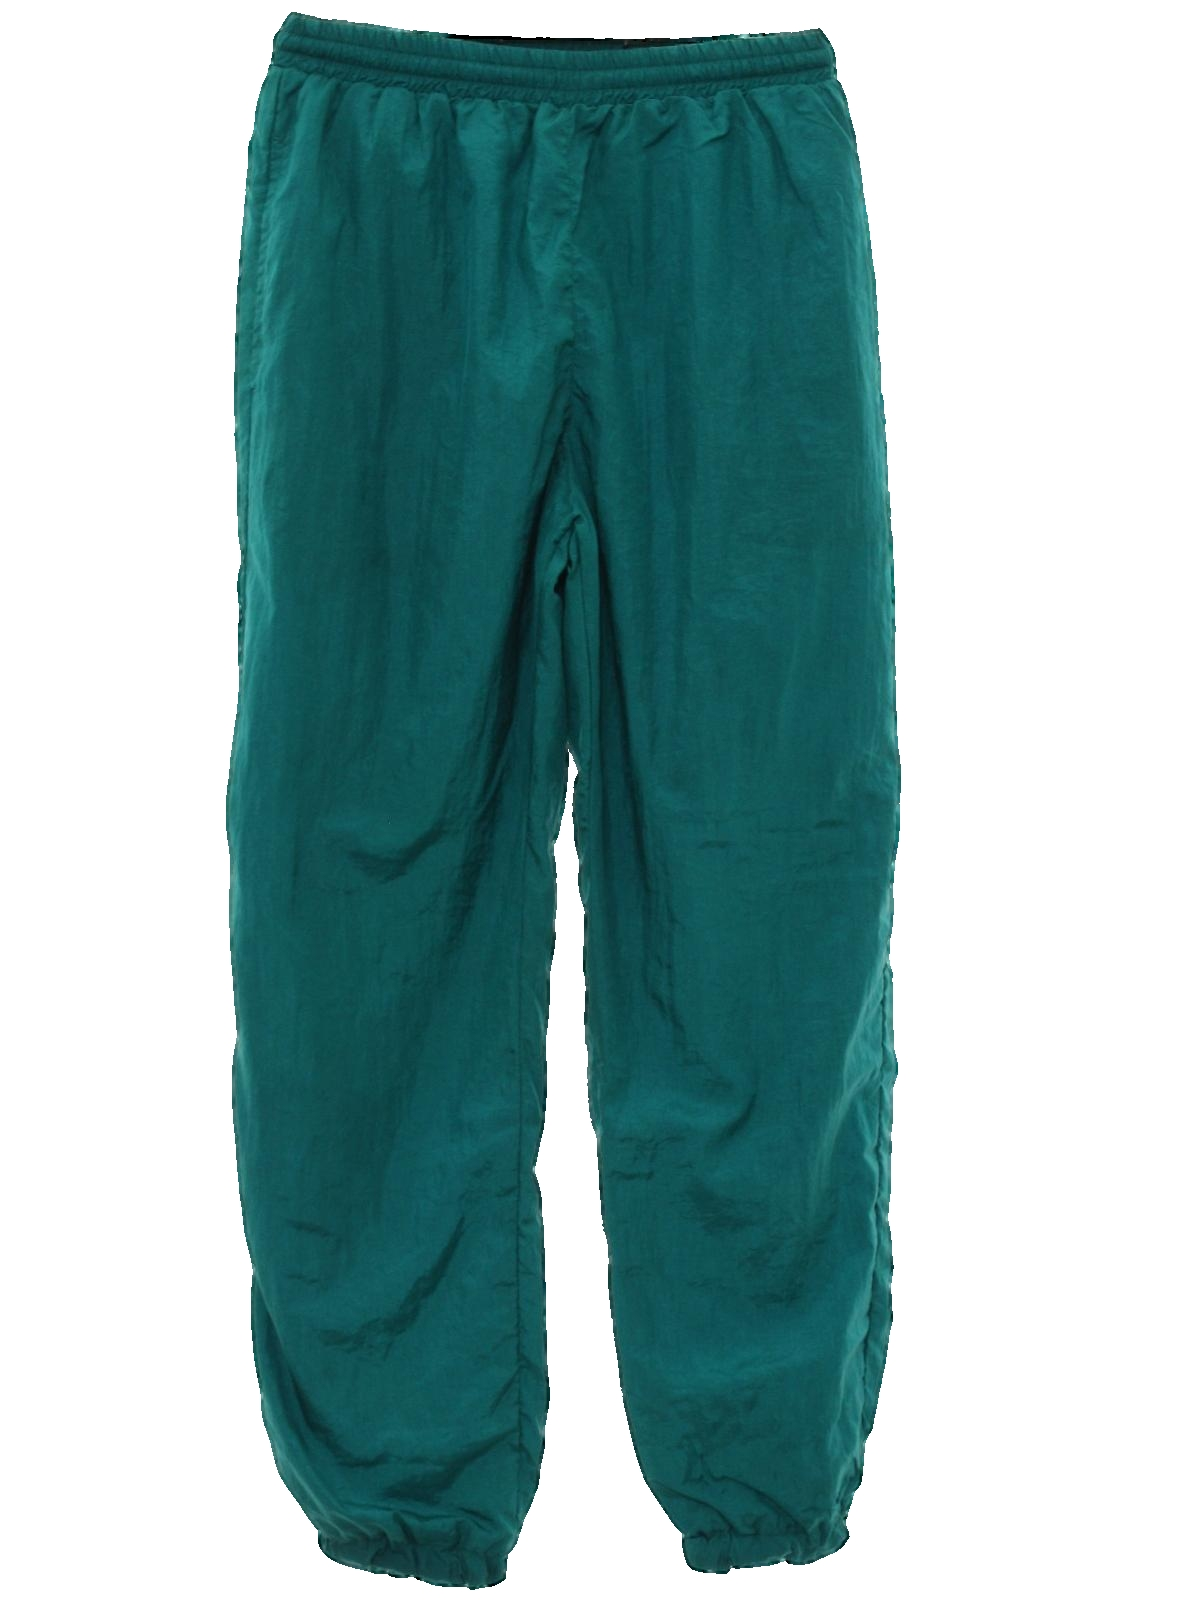 80s Retro Pants: 80s -Care Label- Womens emerald green